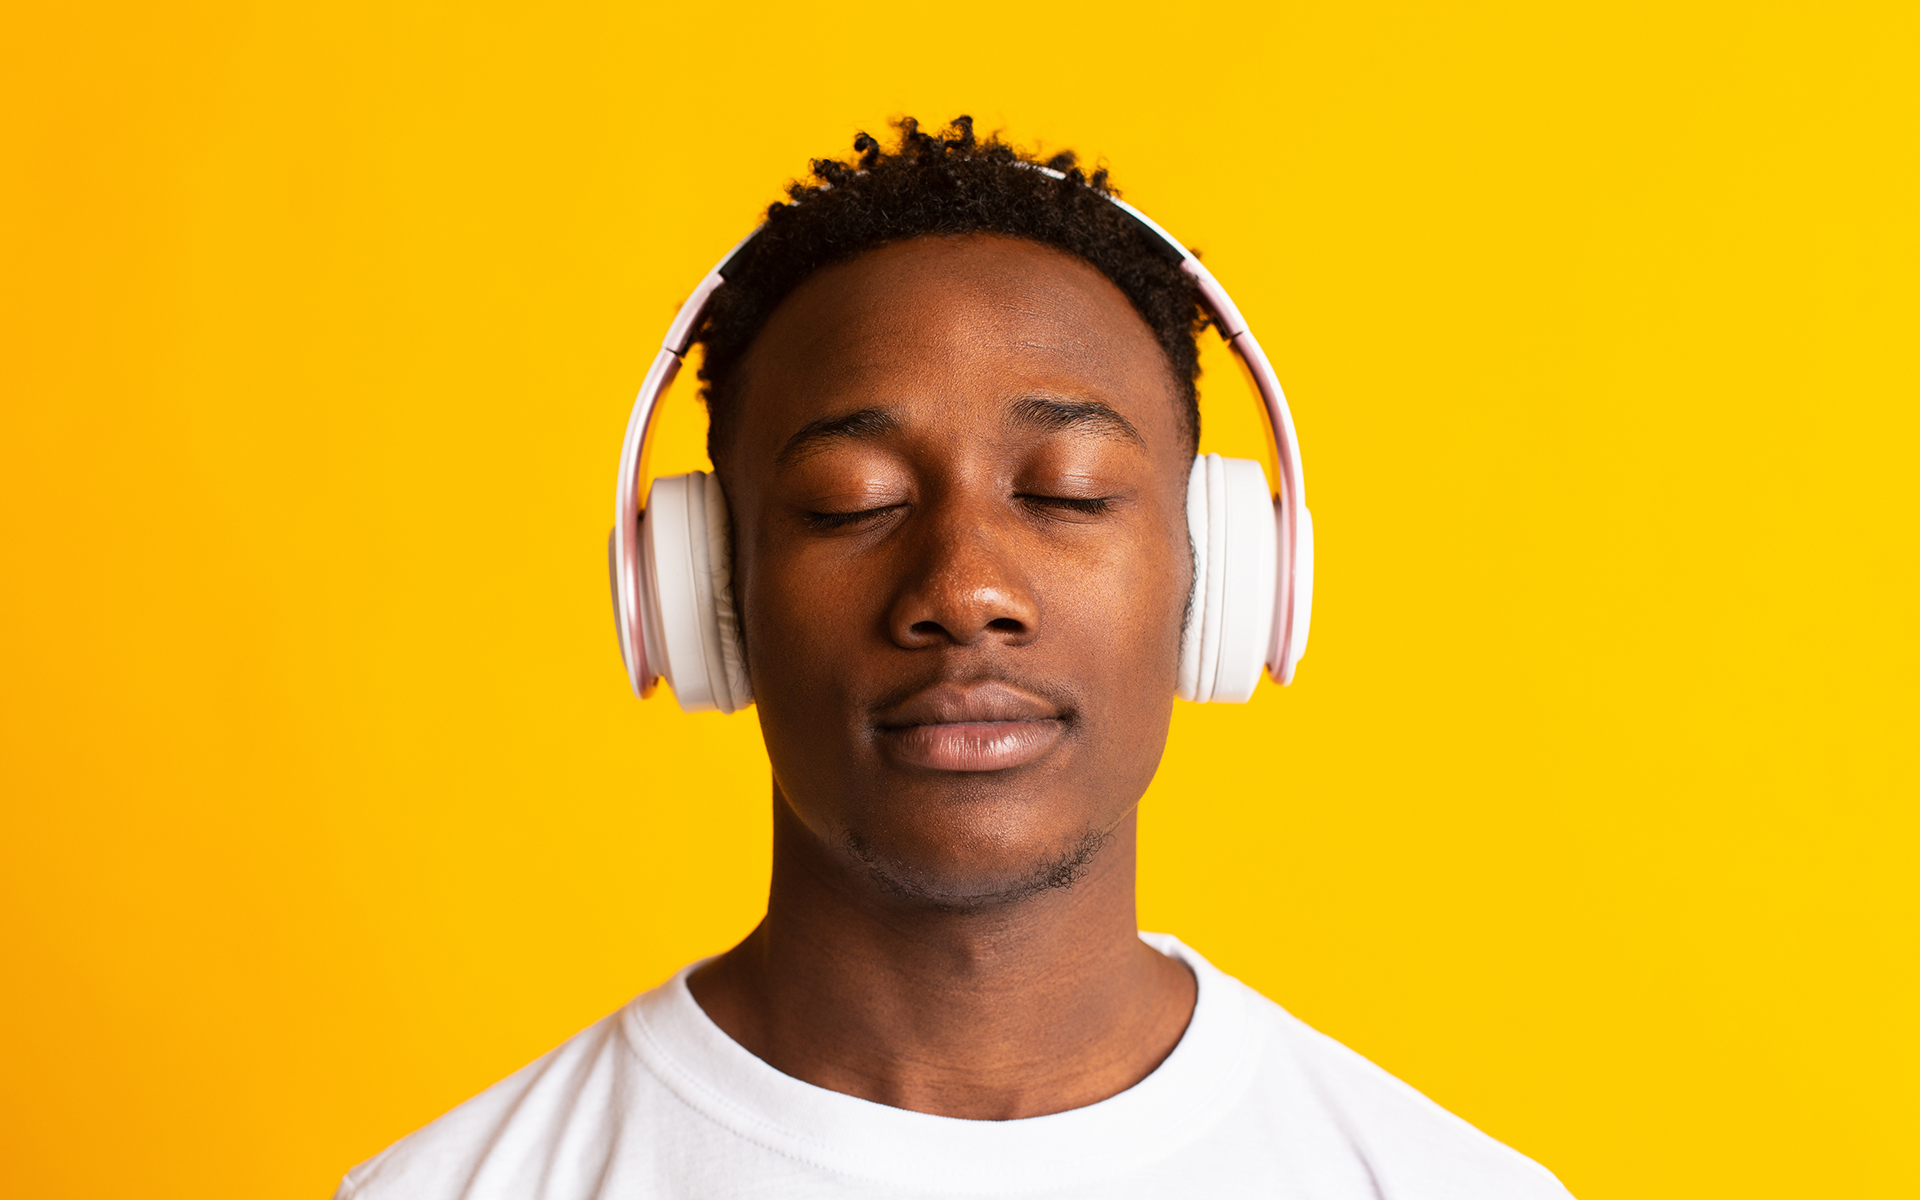 Guided Meditation for Focused Awareness - Man listening to music with headphones, closed eyes and relaxed